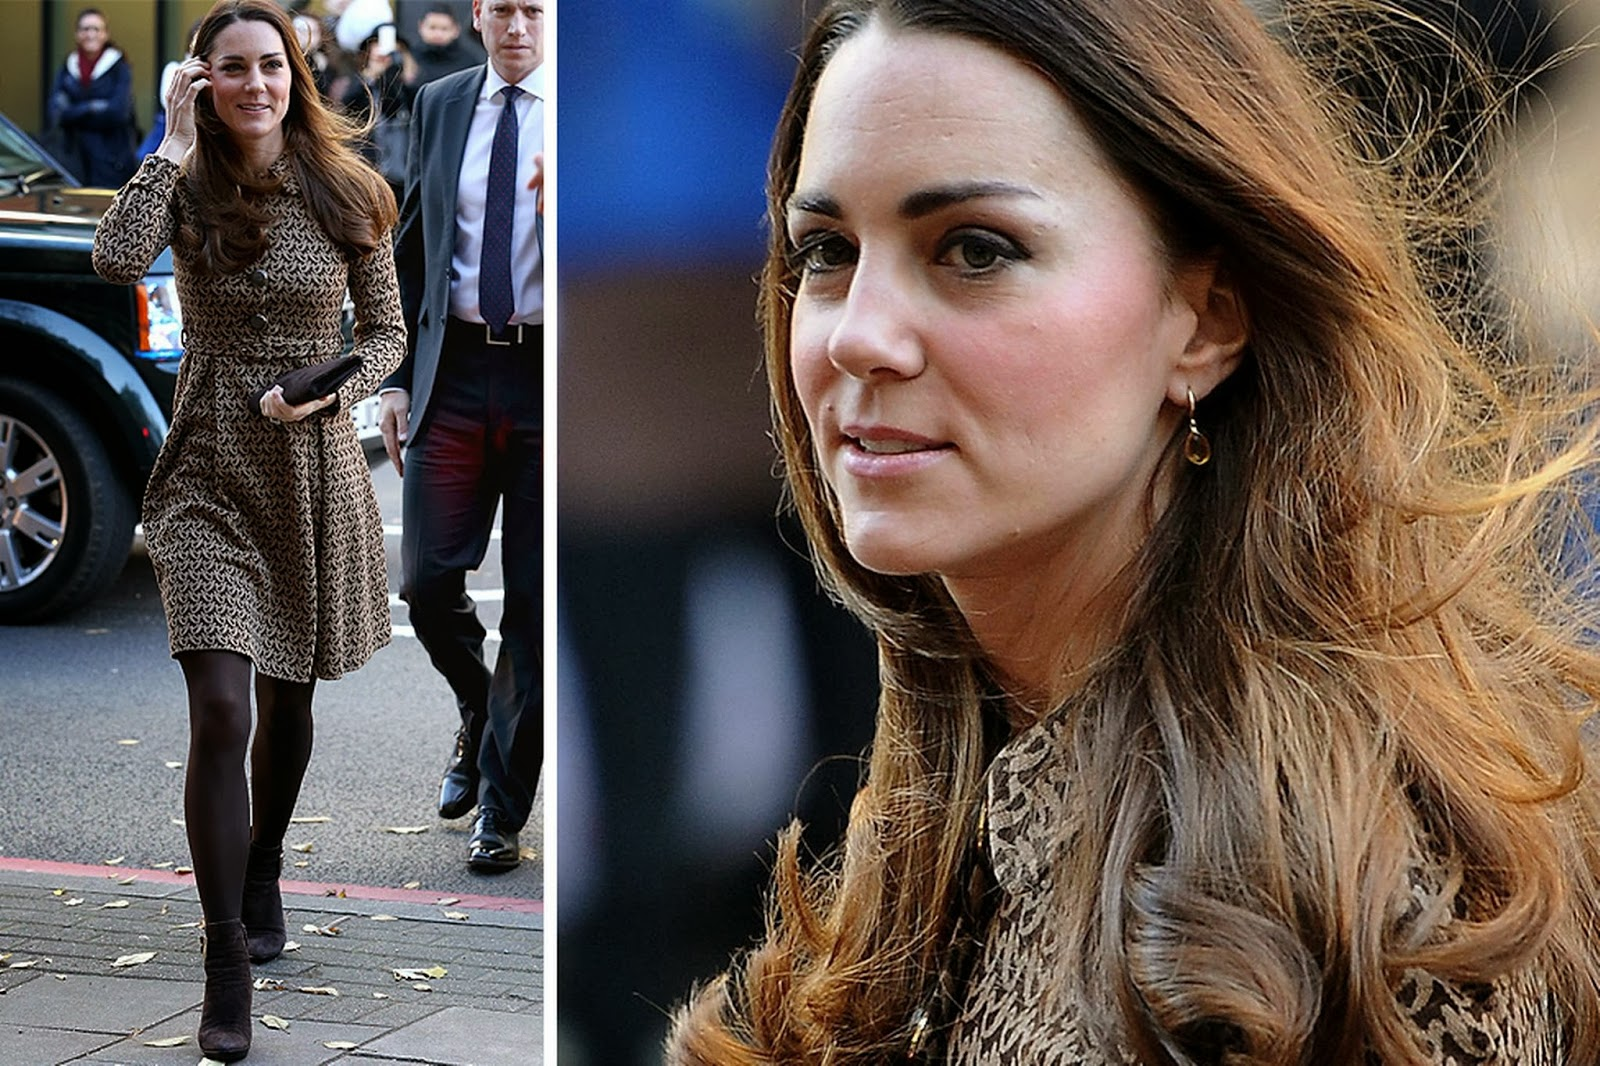 Closer magazine to pay over topless Kate Middleton photos Daily Kate middleton closer photos online